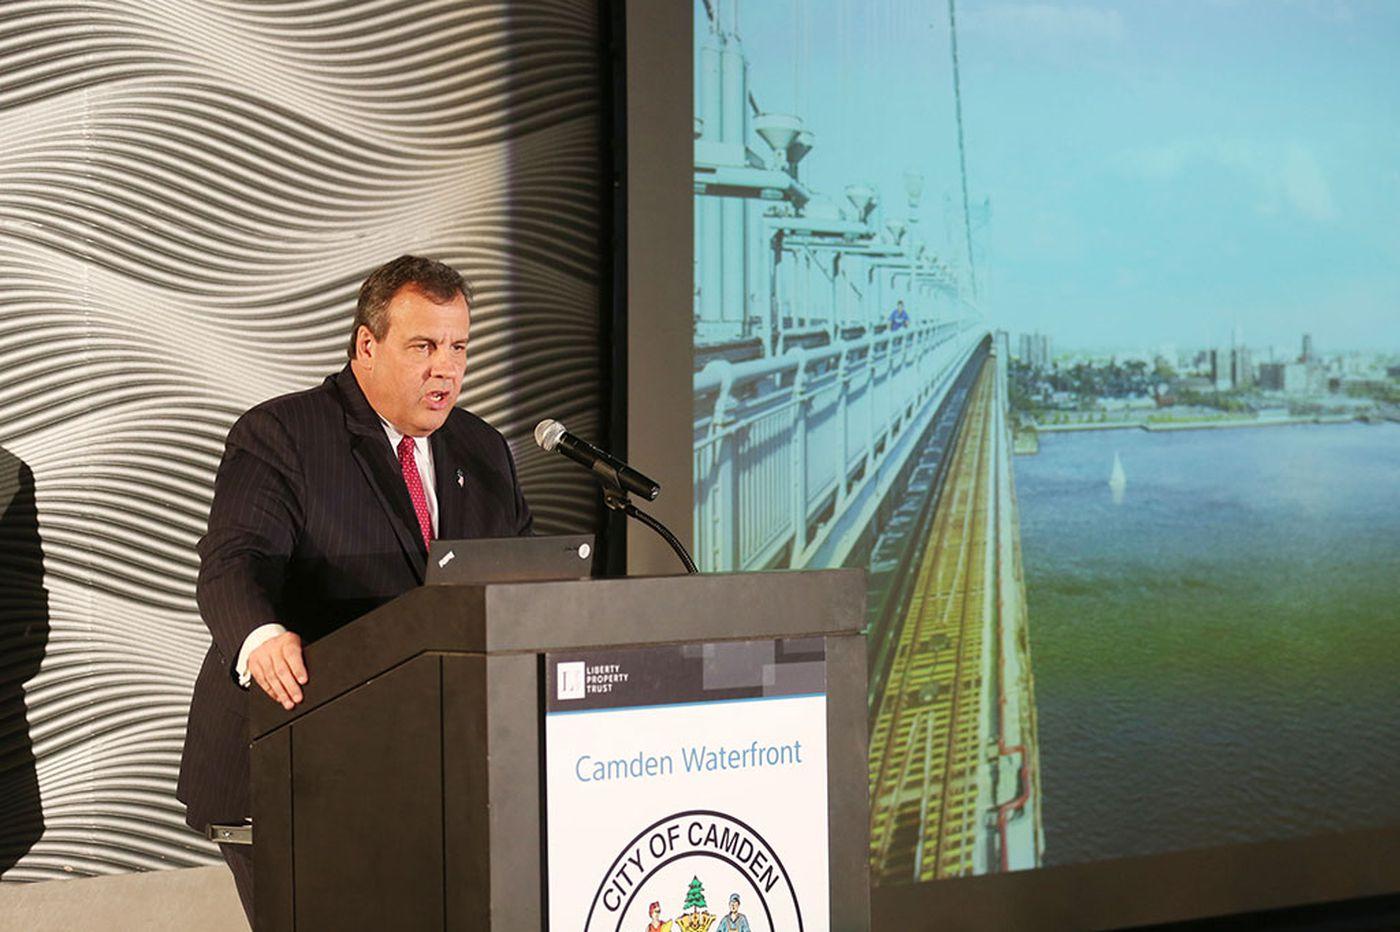 Project aims to transform Camden waterfront - and surprise skeptics